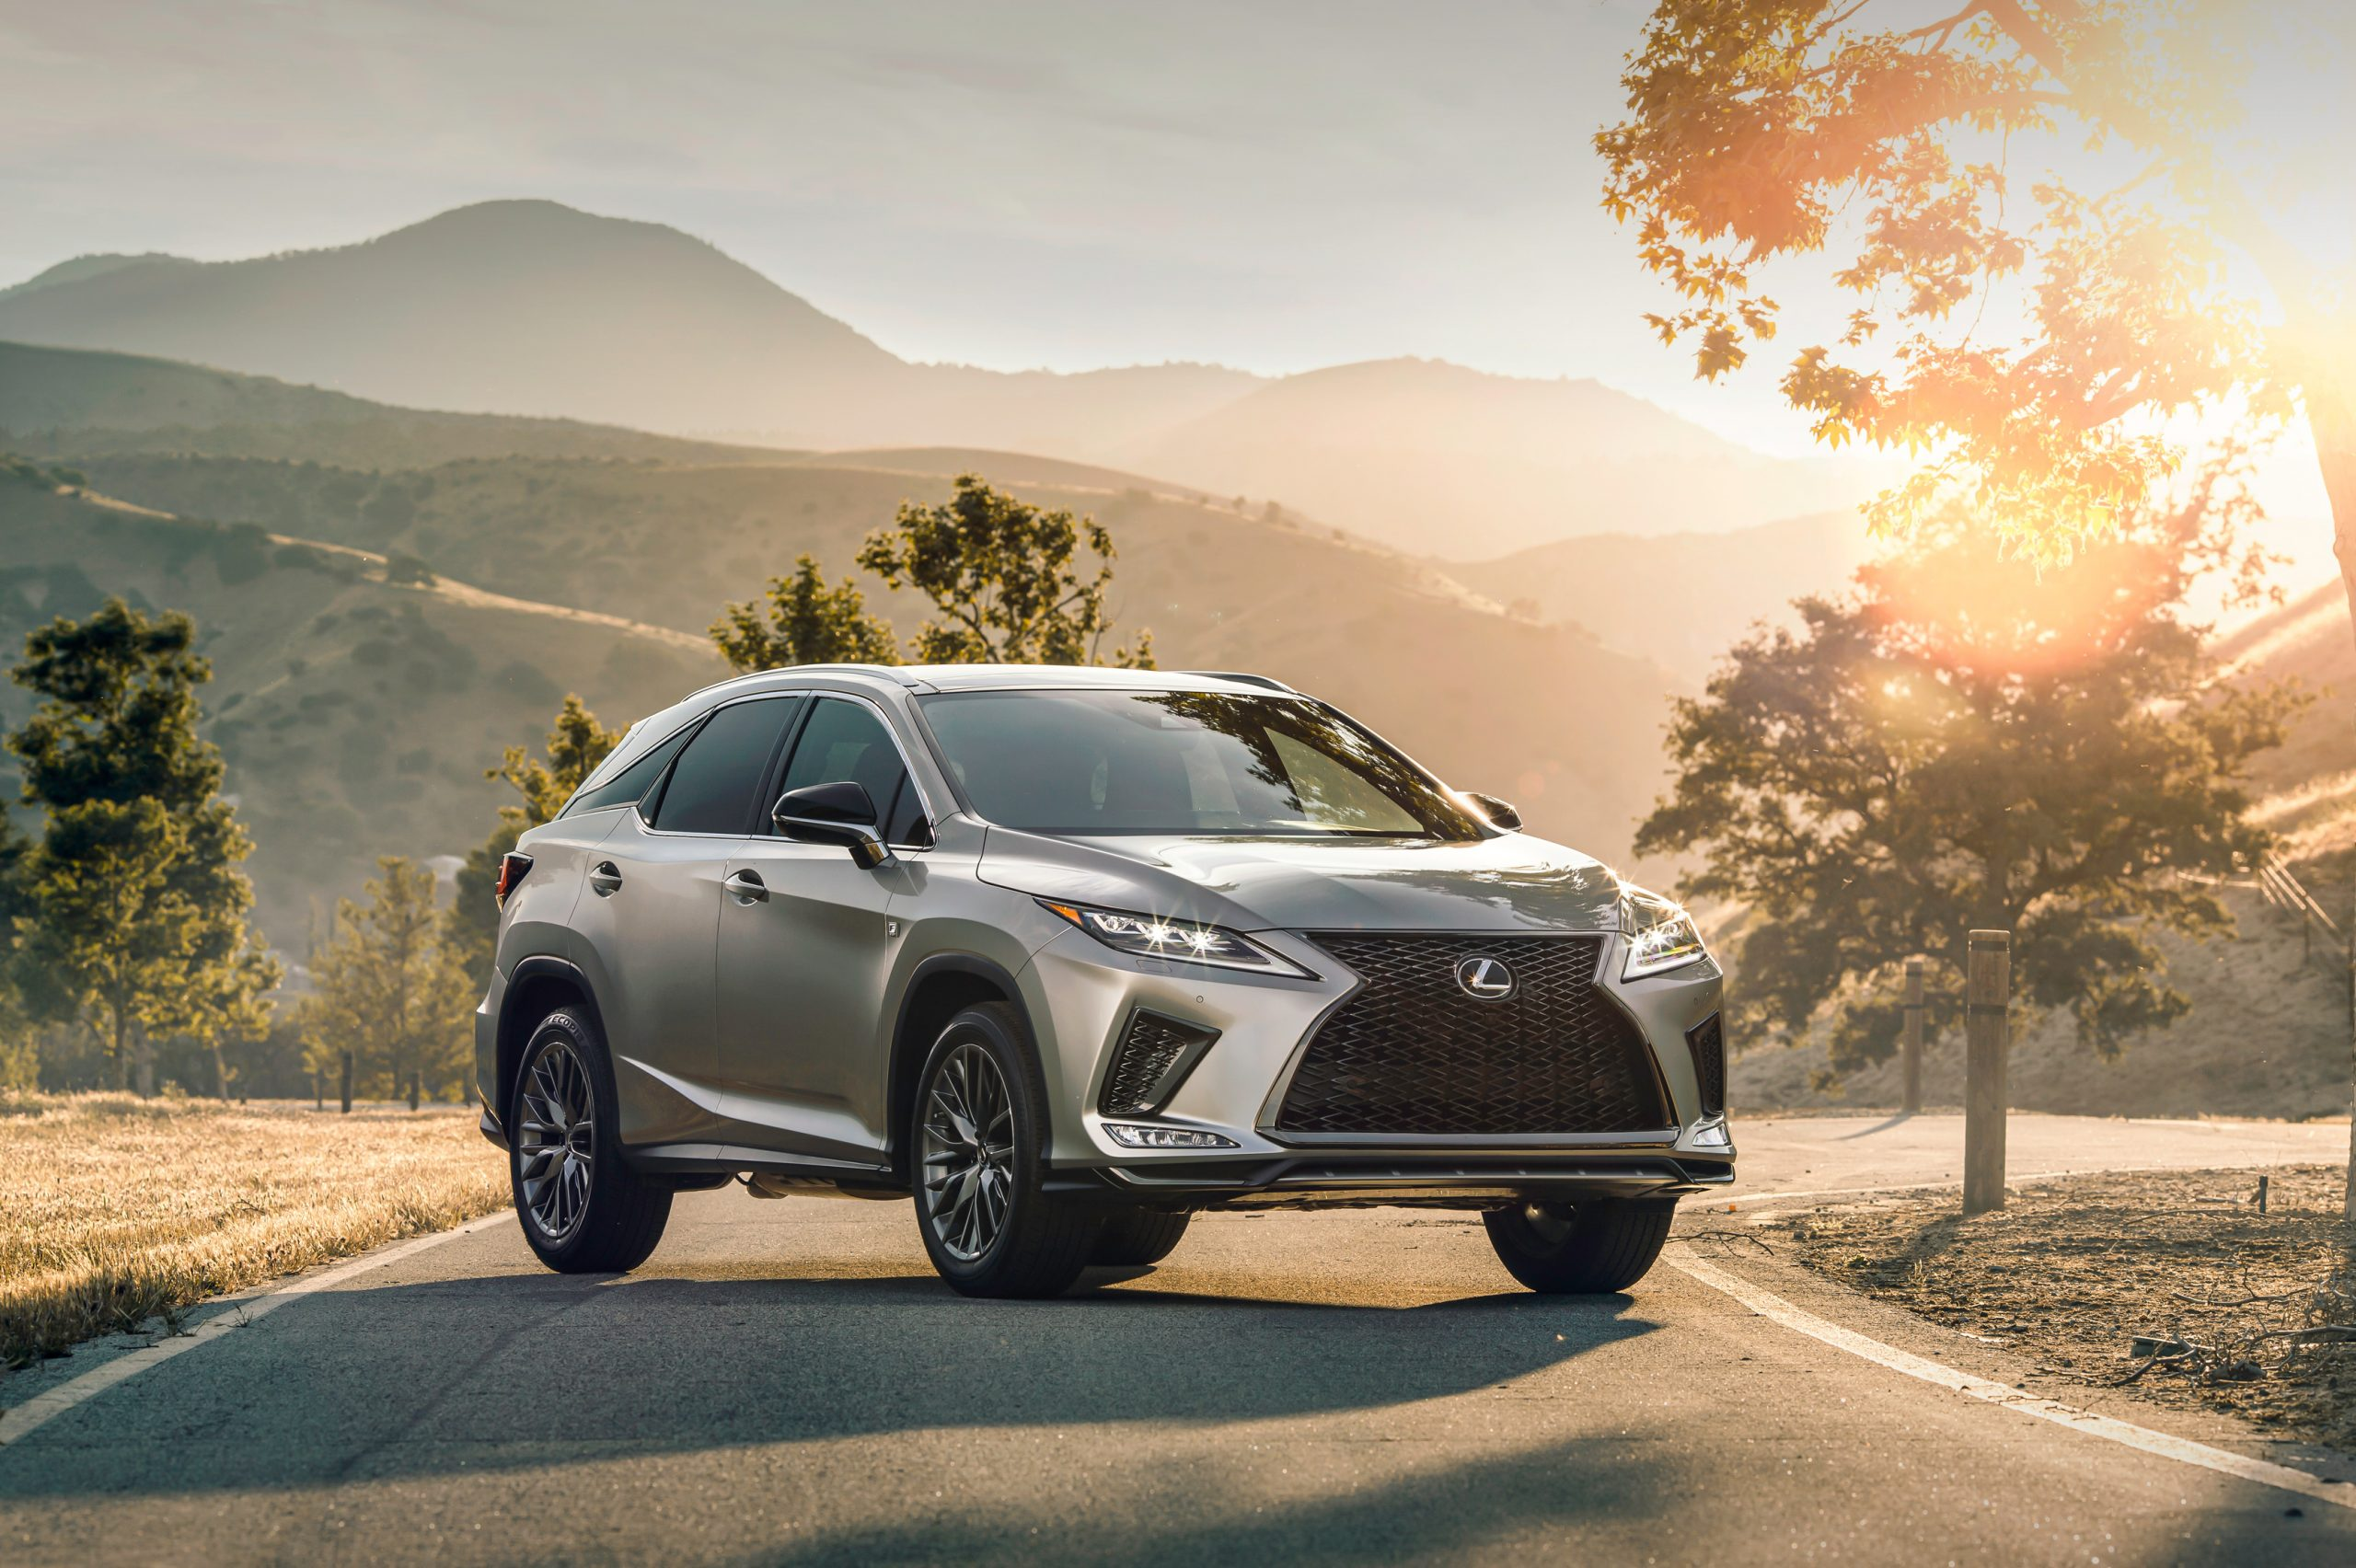 New Model and Performance When Will 2021 Lexus Suv Come Out